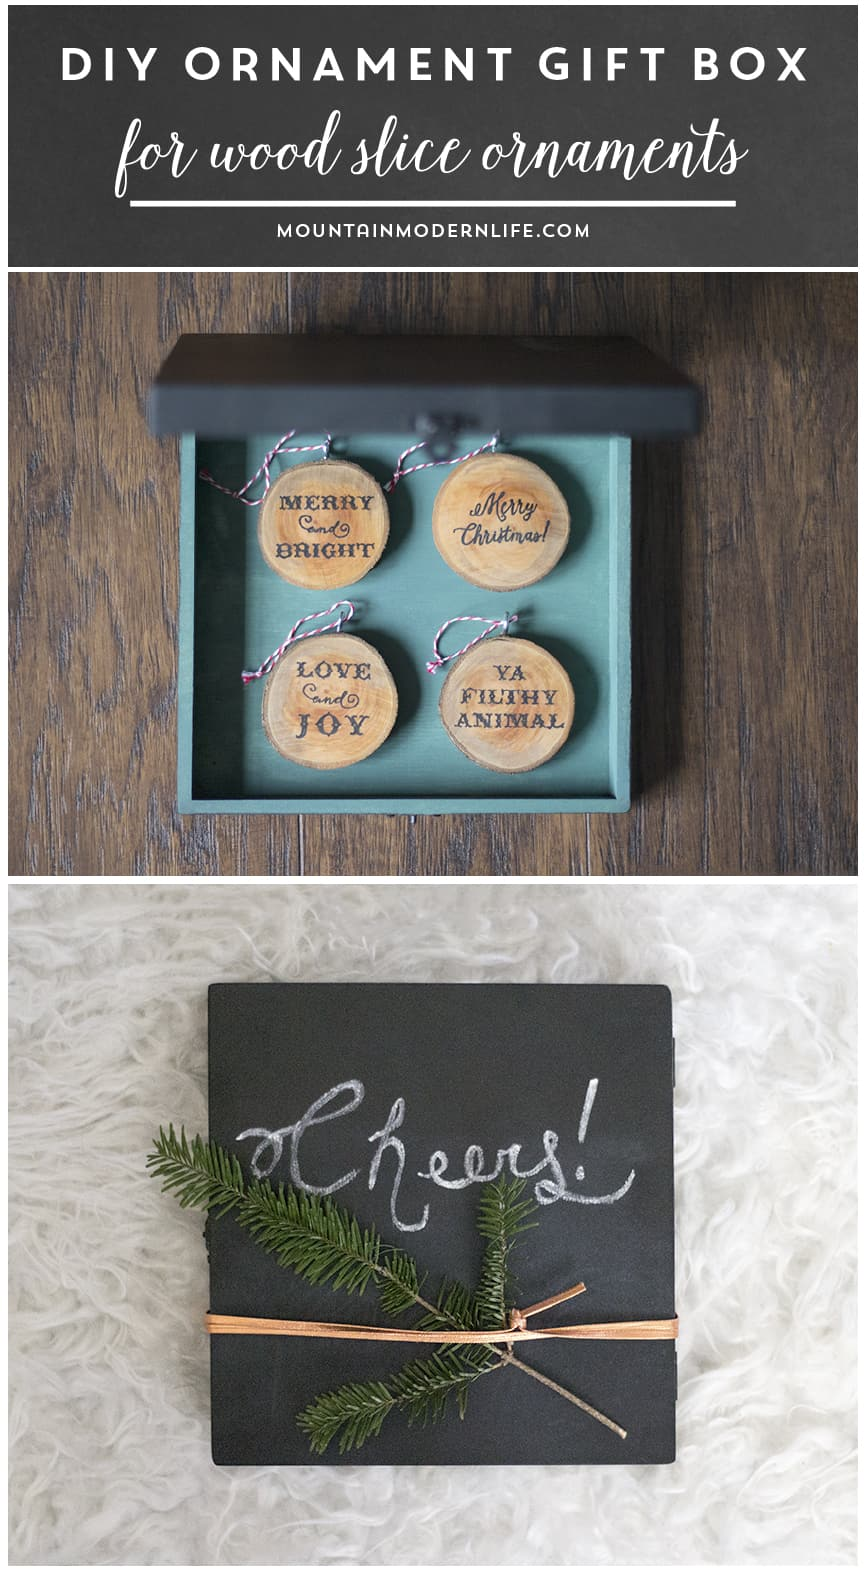 Looking for creative and affordable Christmas gift ideas? Why not create rustic ornaments and give them away in a custom DIY ornament gift box? MountainModernLife.com